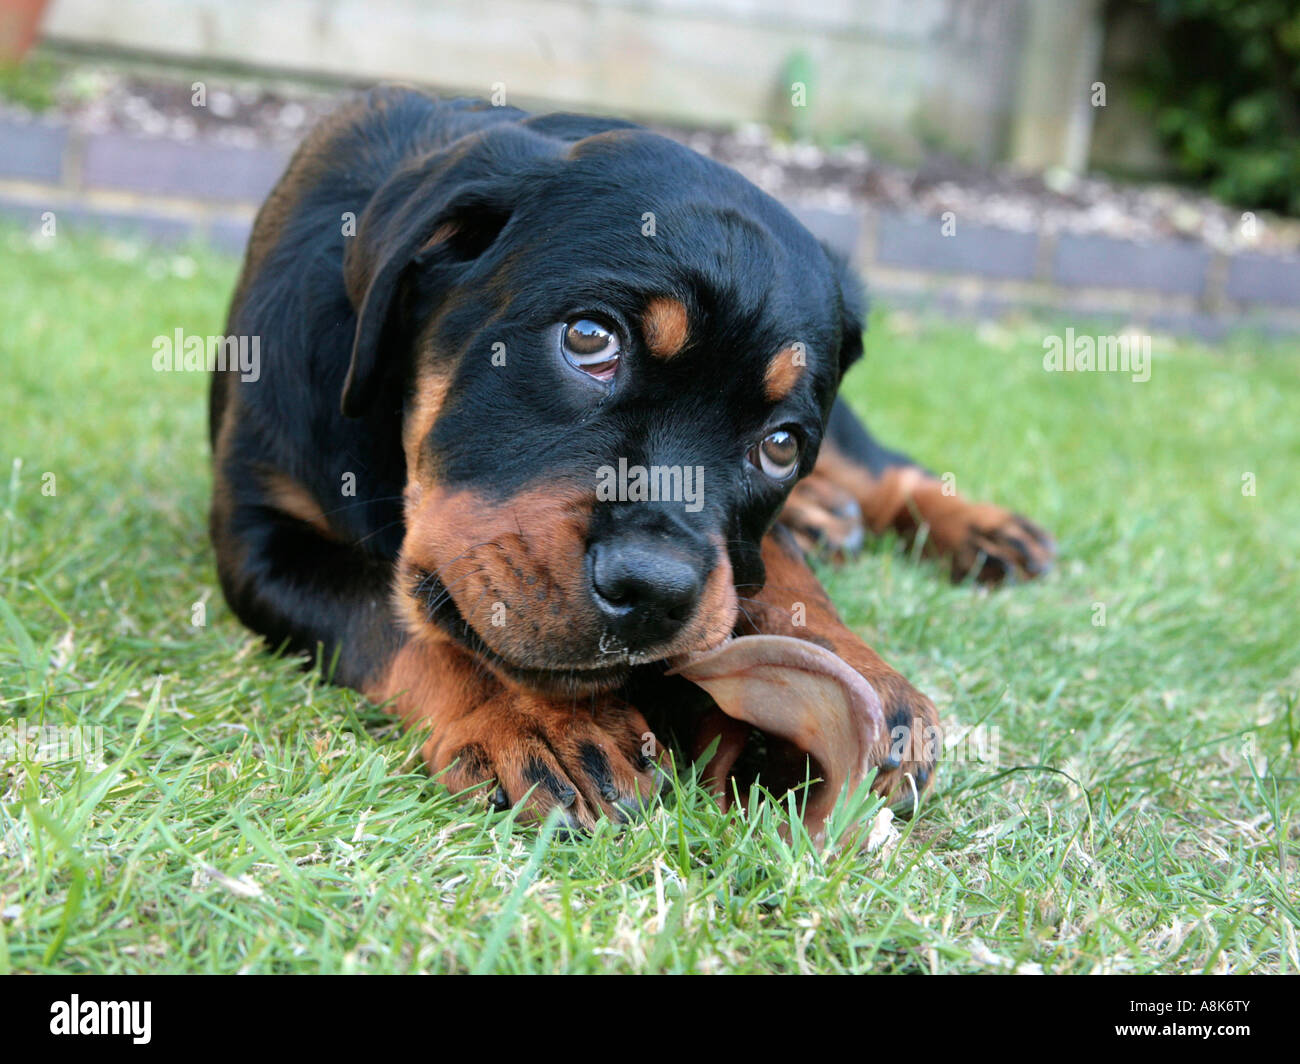 A young rottweiler chewing a dogs ear. - Stock Image